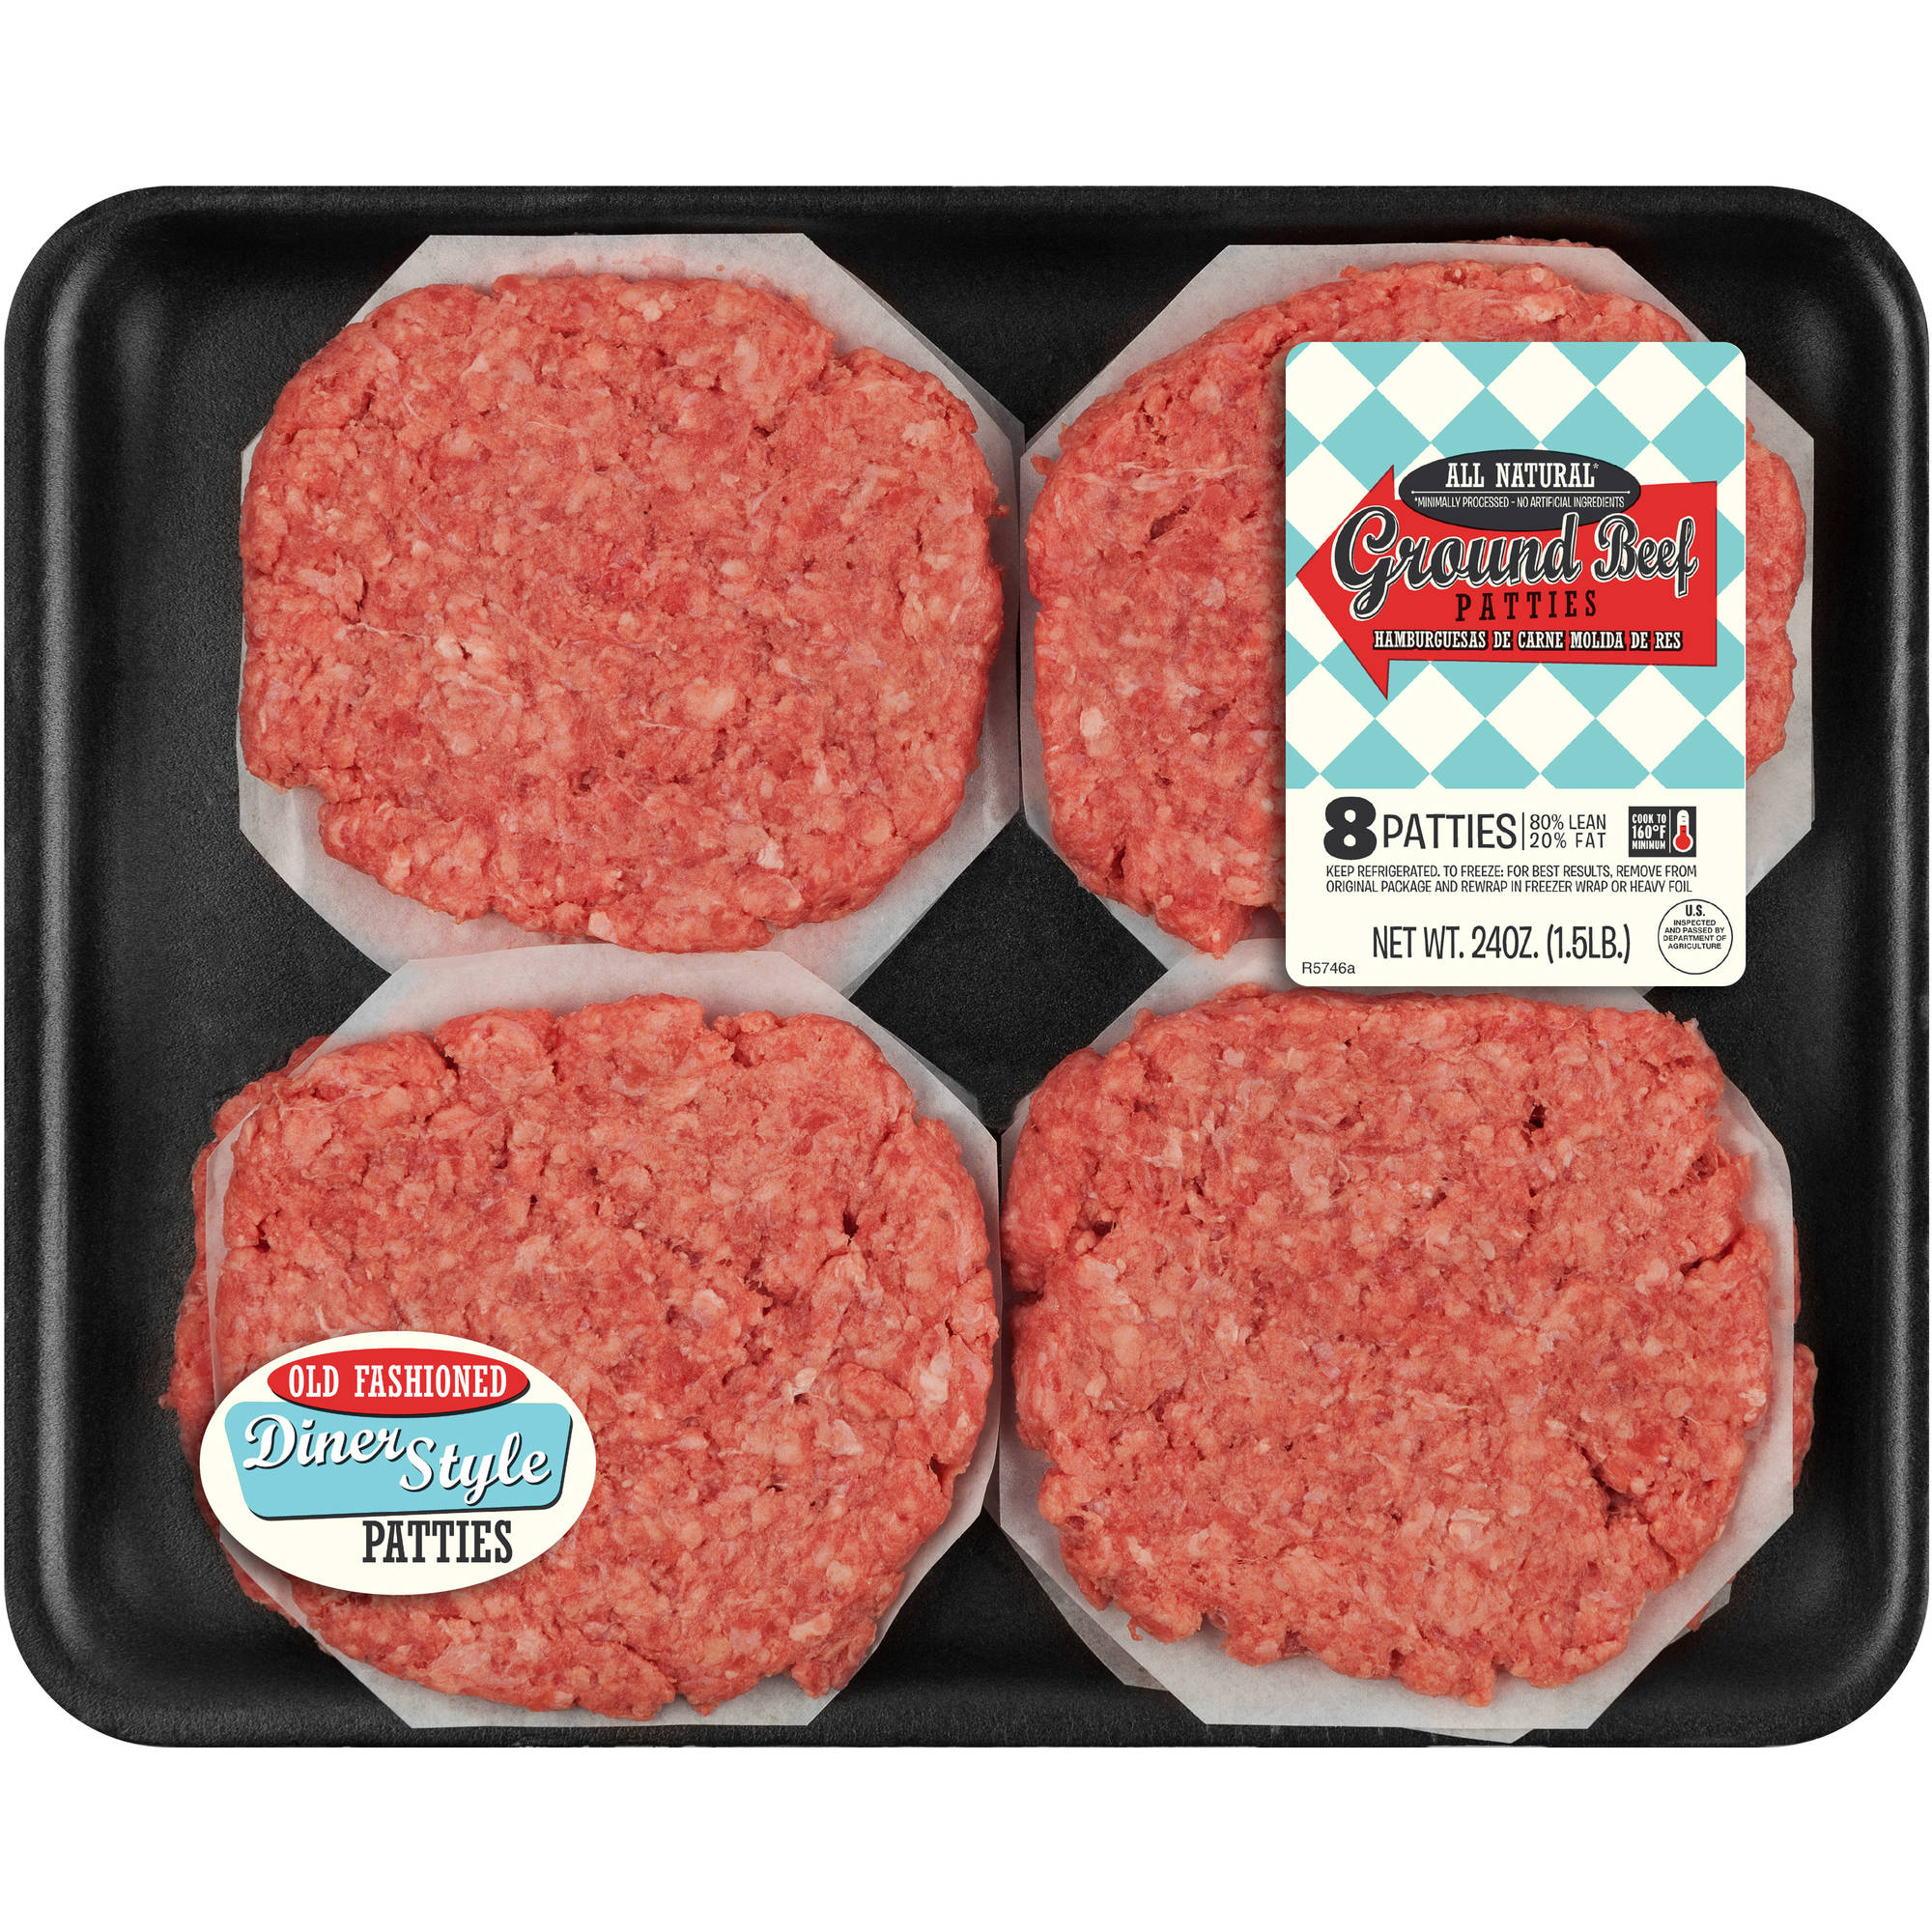 80% Lean 20% Fat Ground Beef 8ct Patties, 1.5 lbs